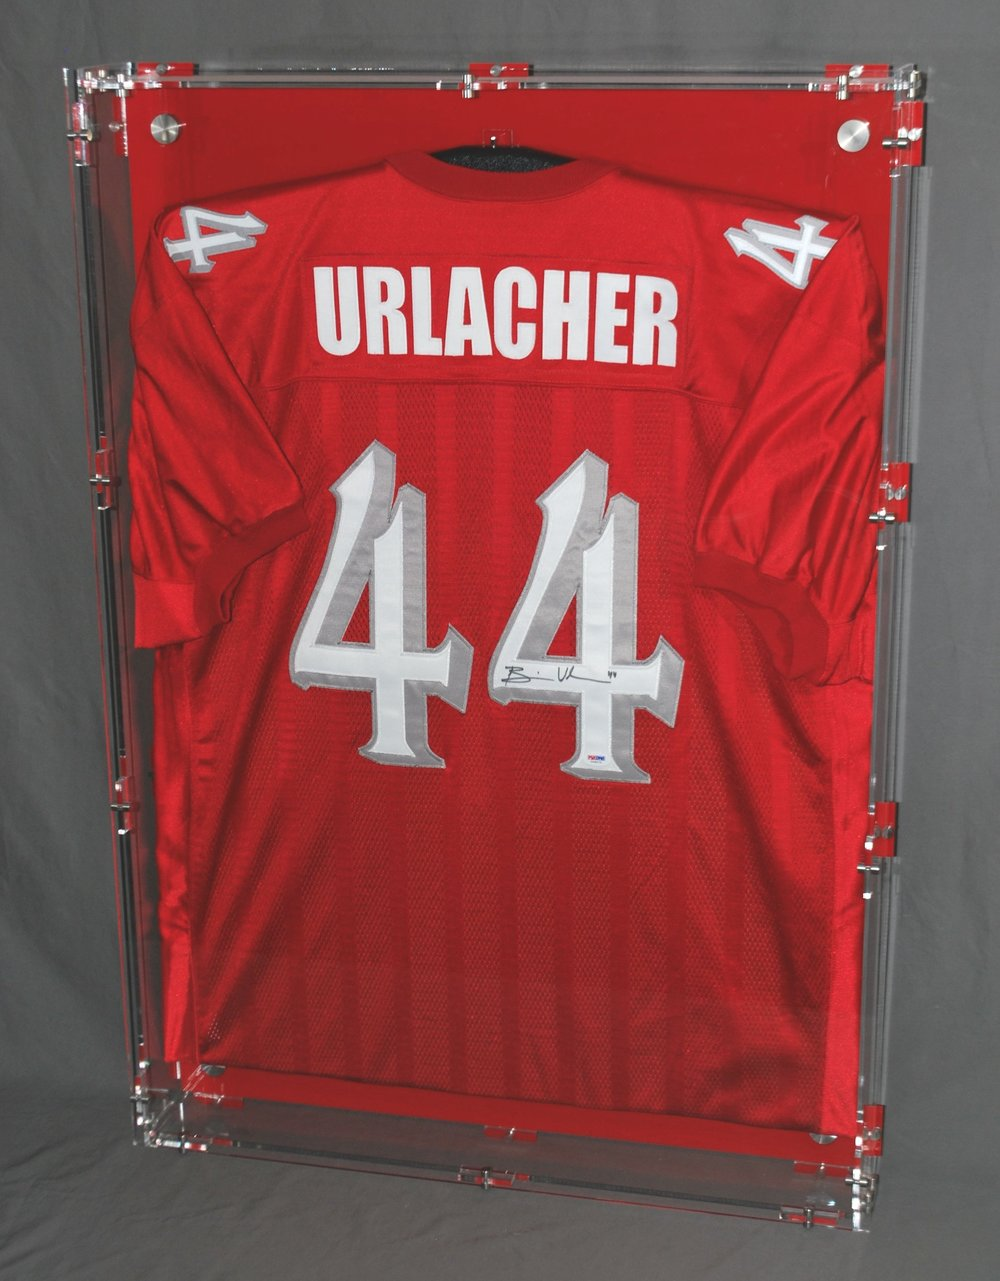 "Jersey Case - 28""x 40""x 3.5"",  clear case mounts from SS corner hardware,  can be custom-etched per customer desires.  Contact us for pricing information."